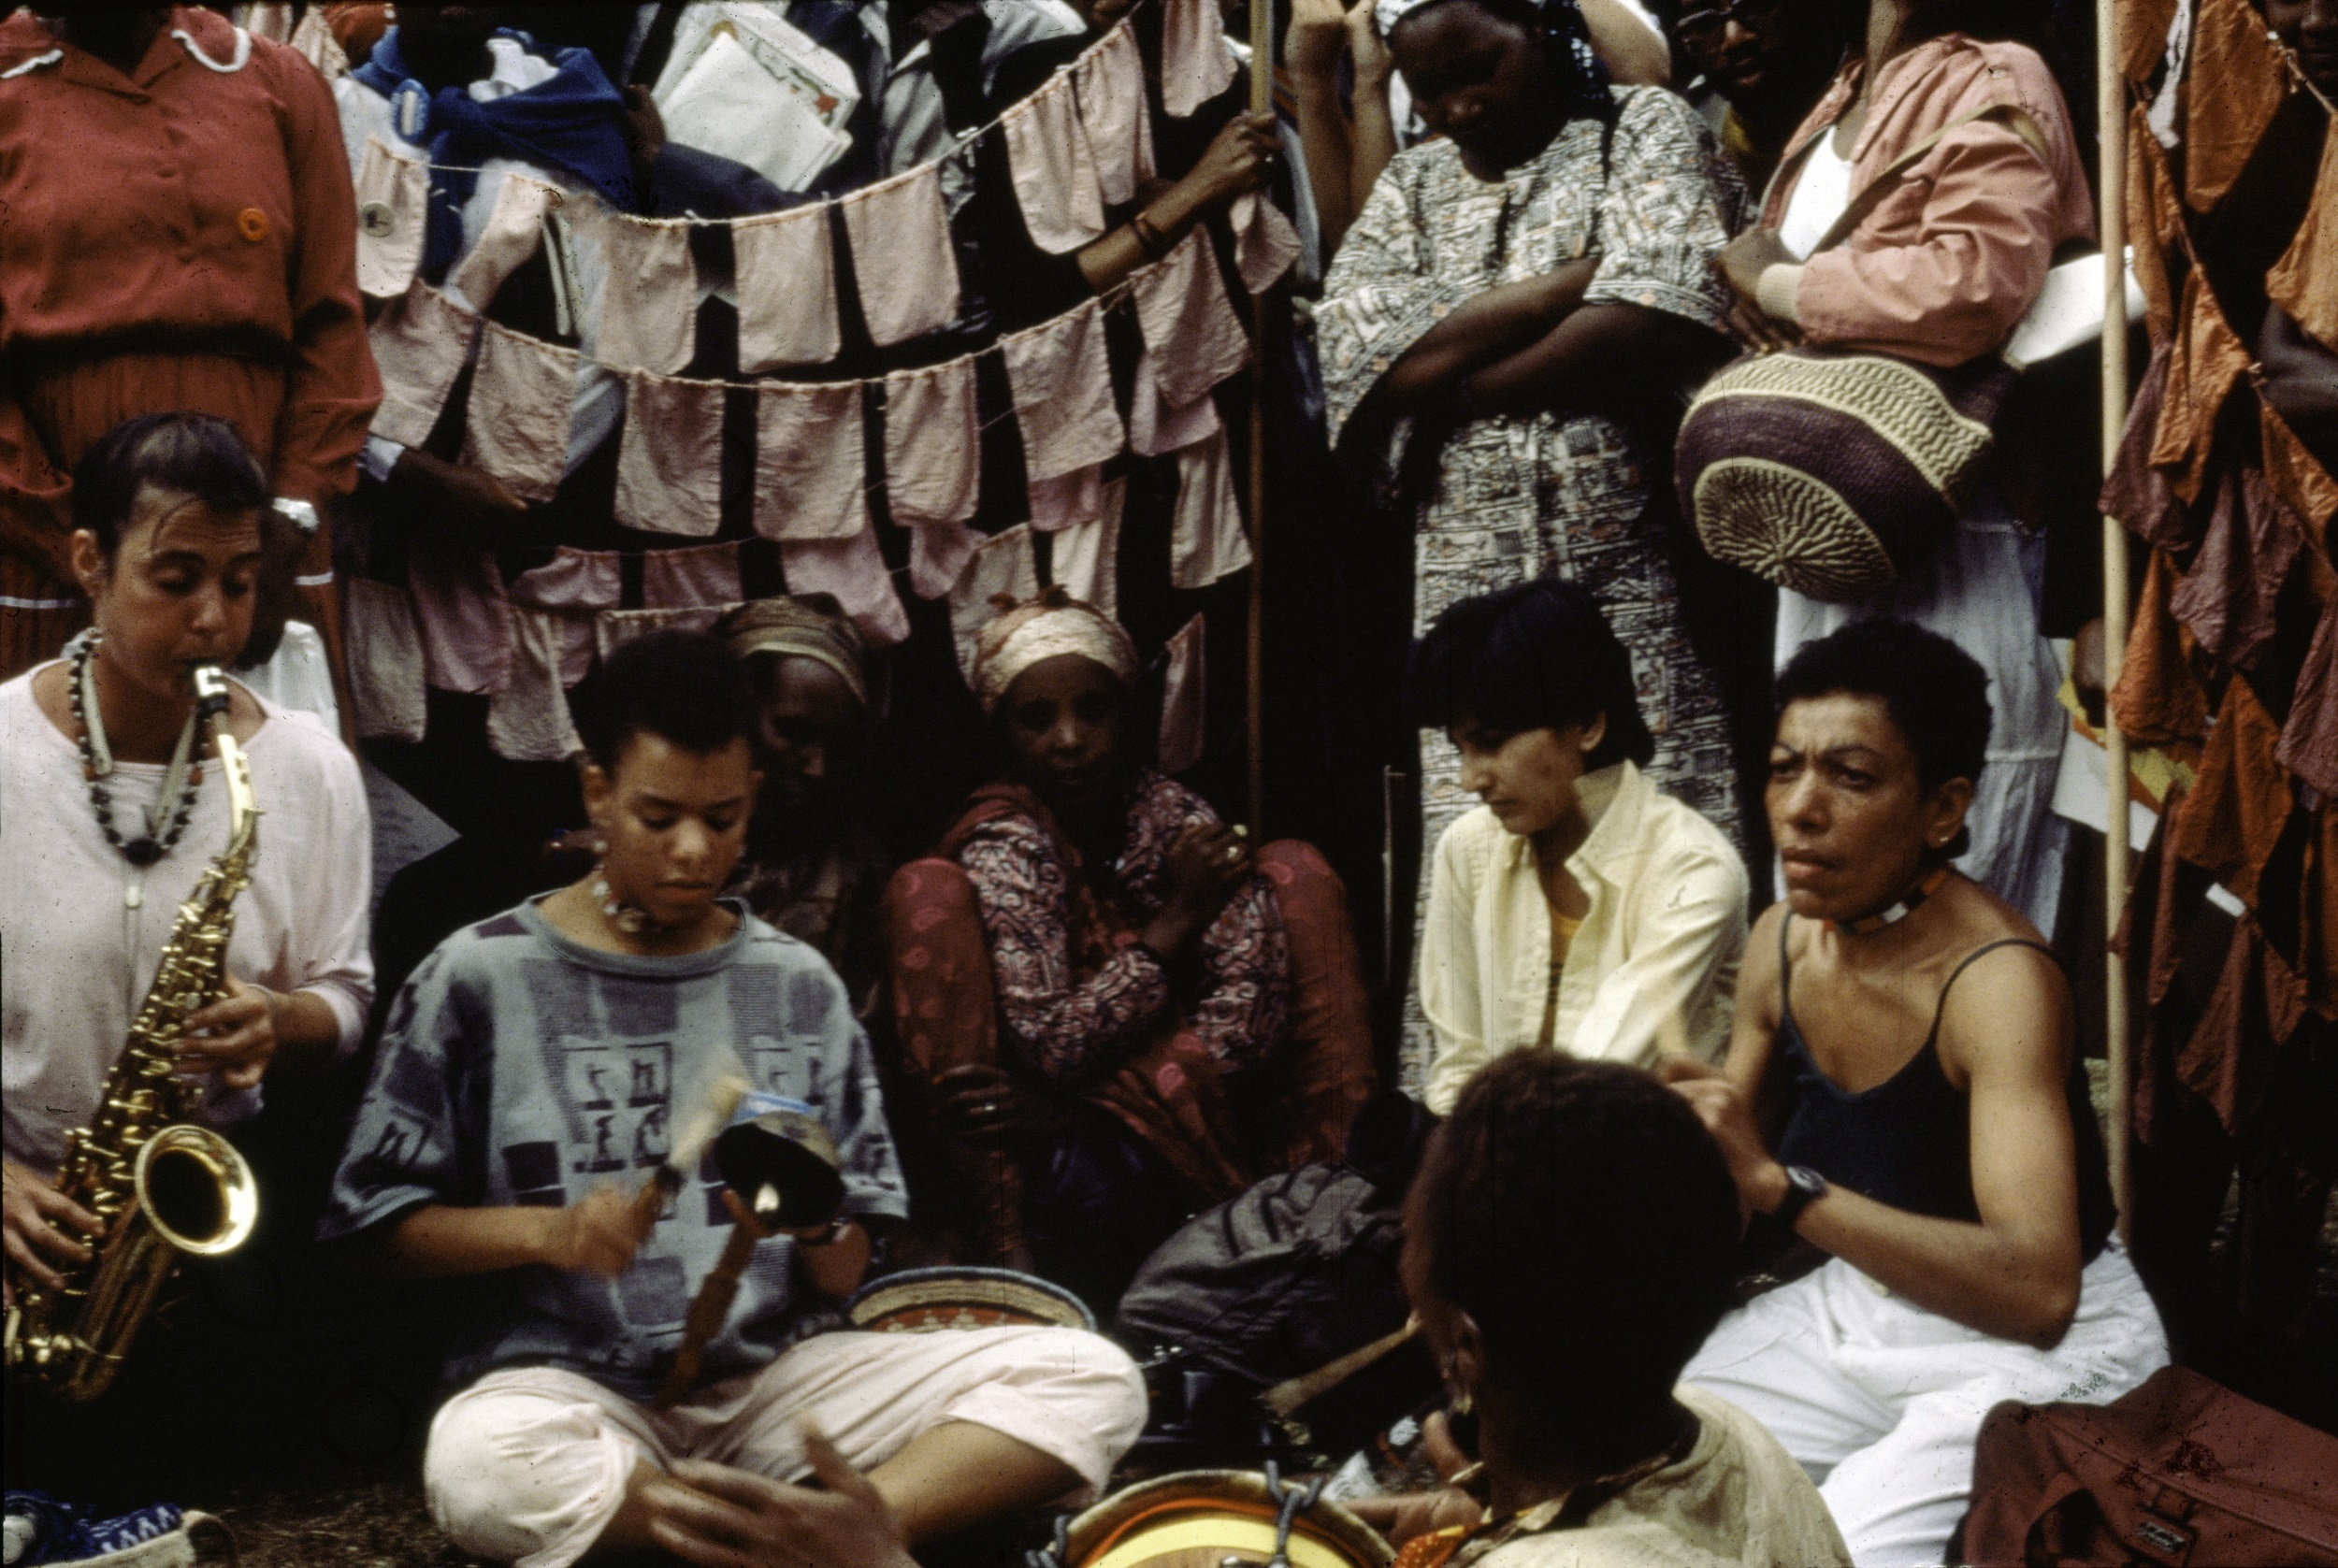 Musicians are seated and playing in front of a backdrop of small cloths hanging on a line.